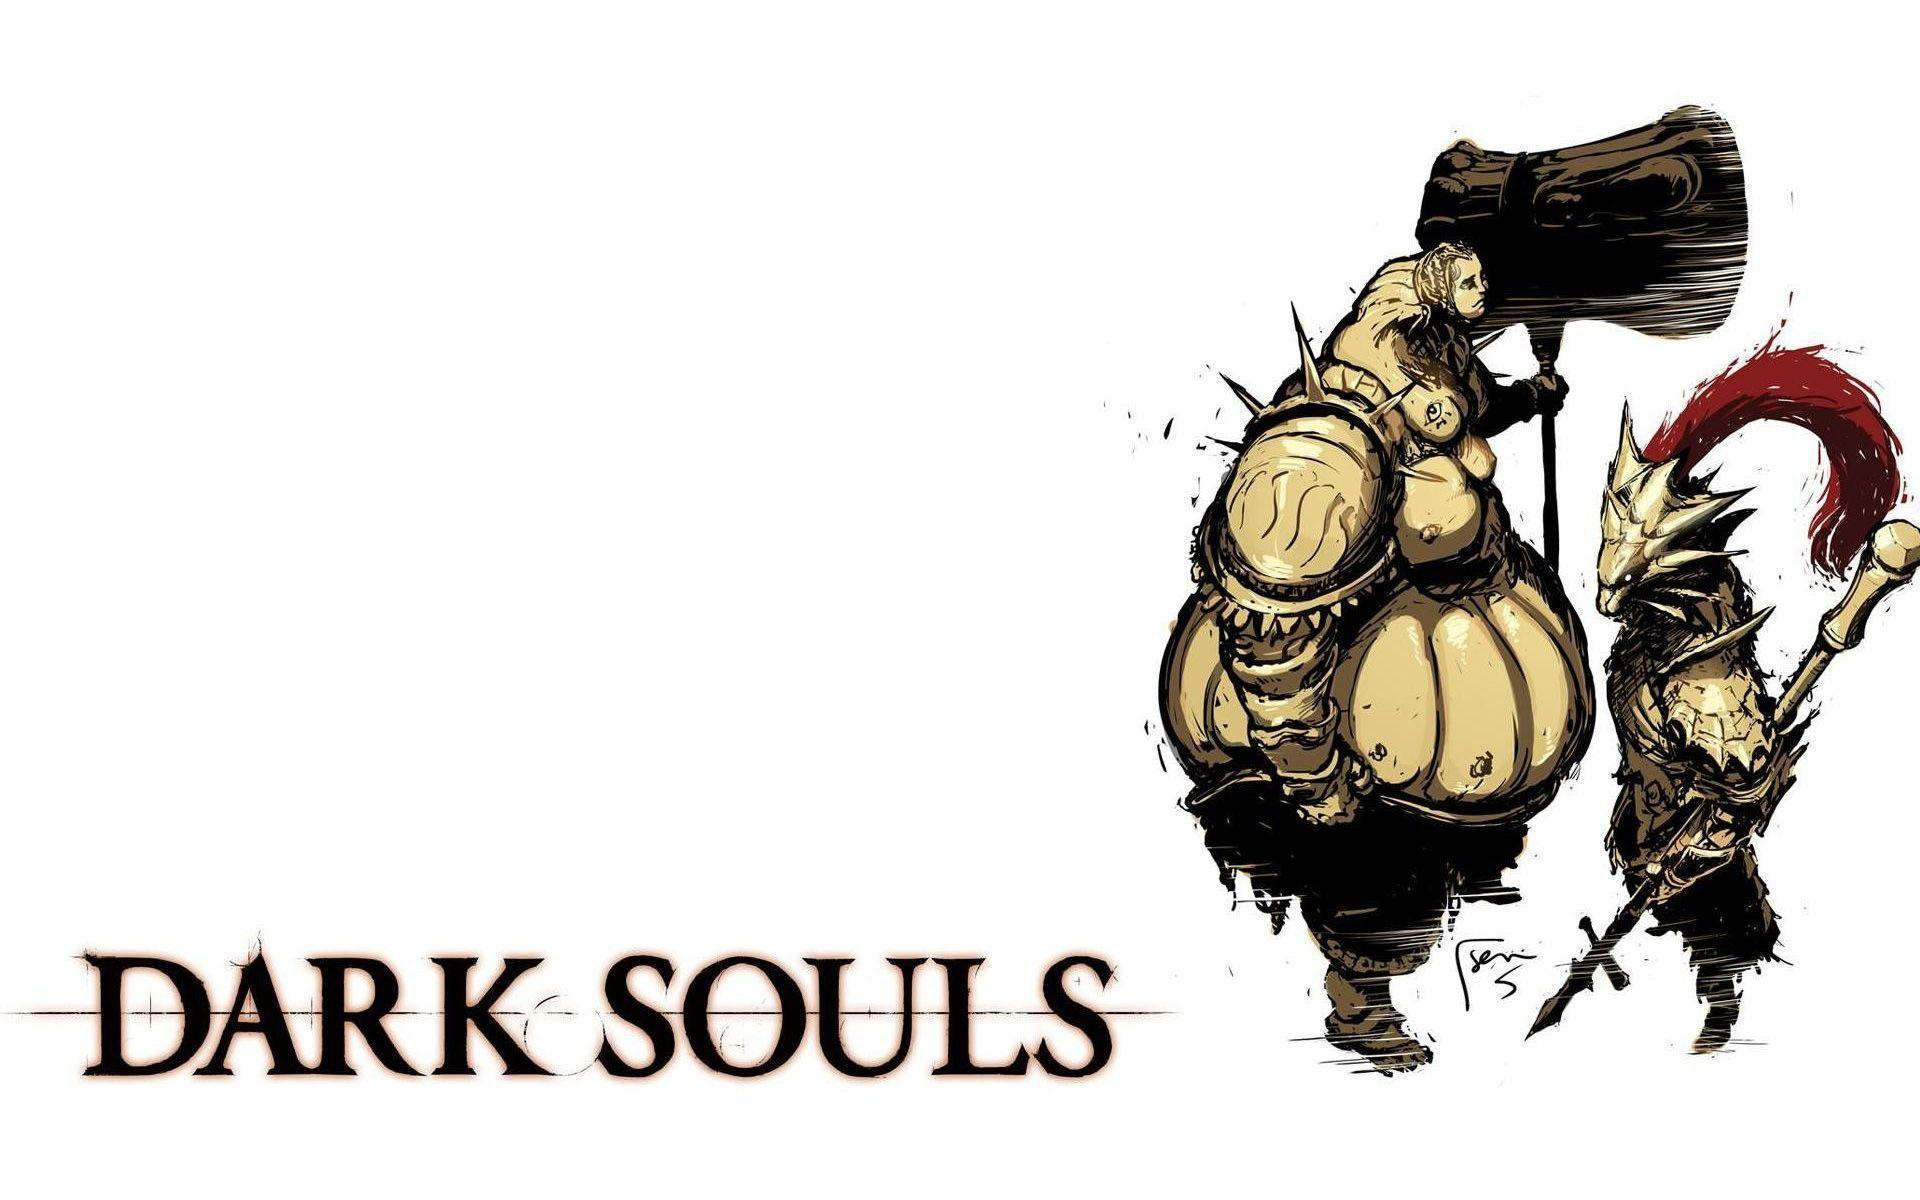 dark souls 3 wallpaper 1920x1080, dark souls 1920x1080 wallpaper